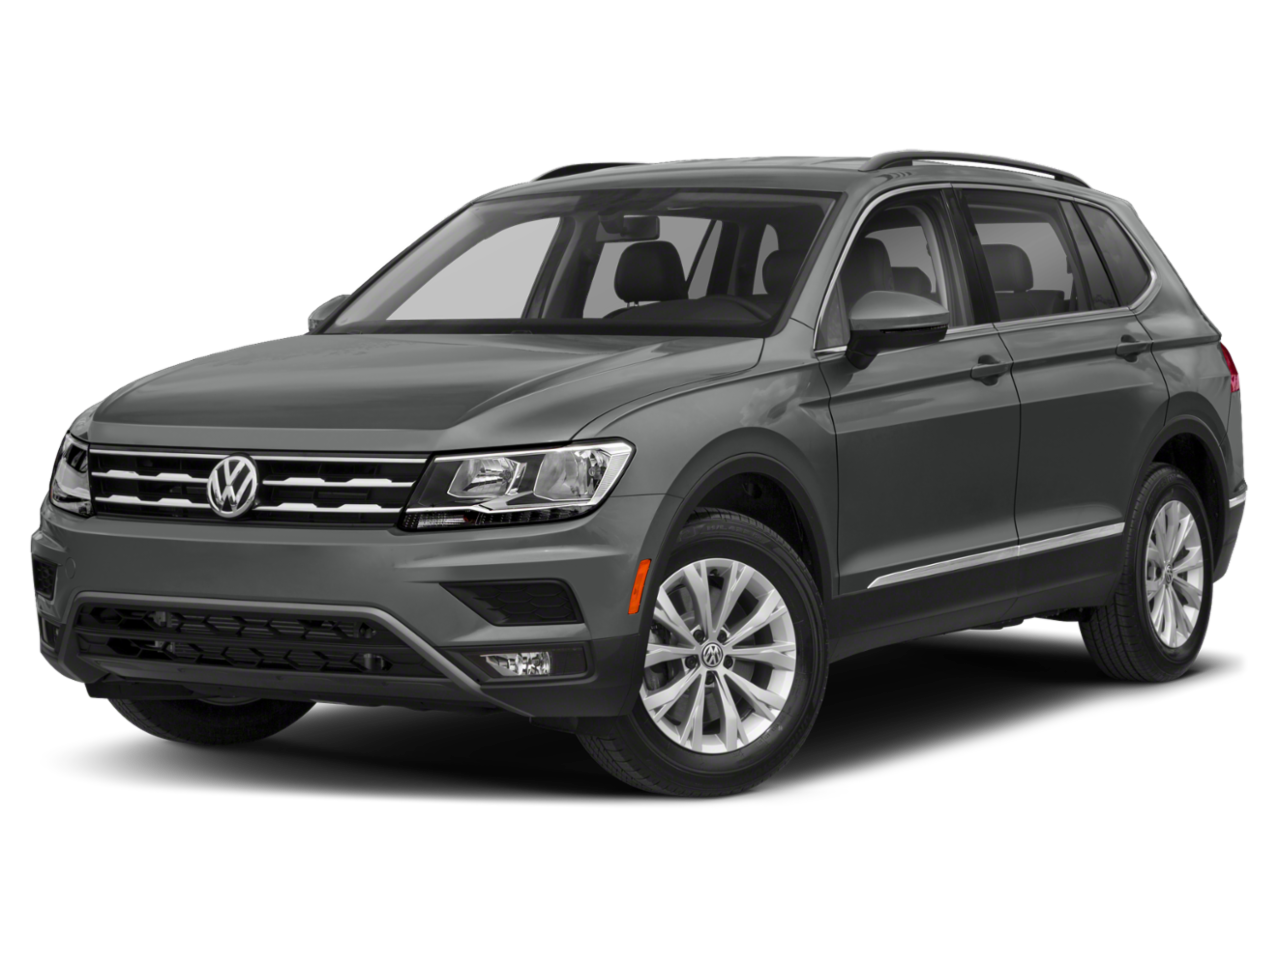 Volkswagen Tiguan 2021 View Specs Prices Photos More Driving